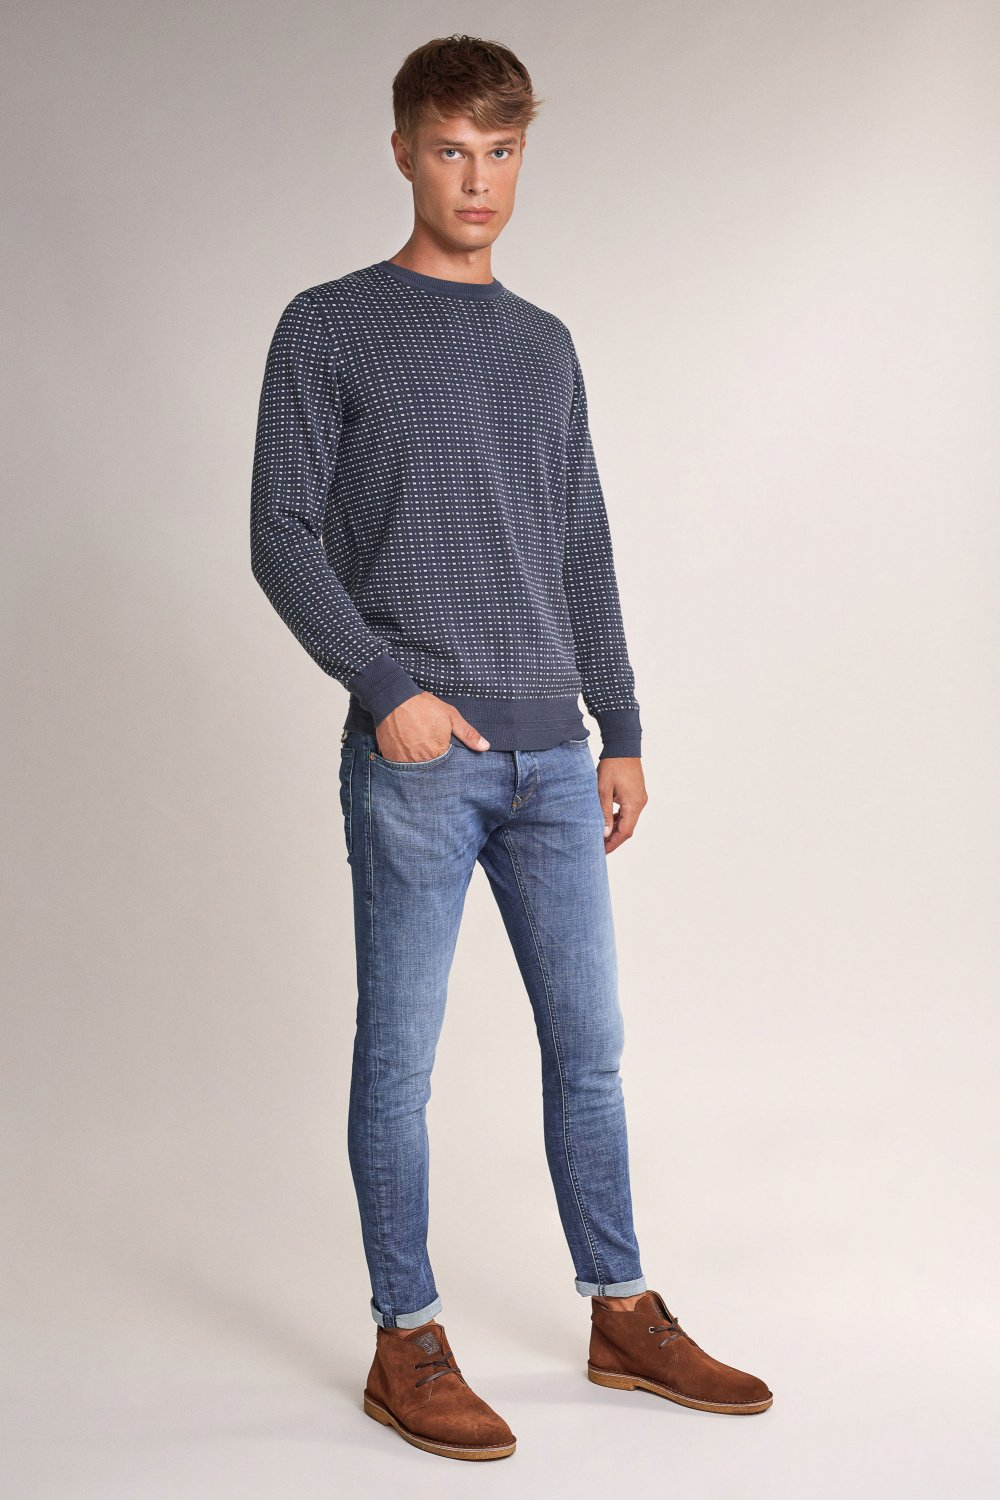 Thin Jacquard sweater - Salsa